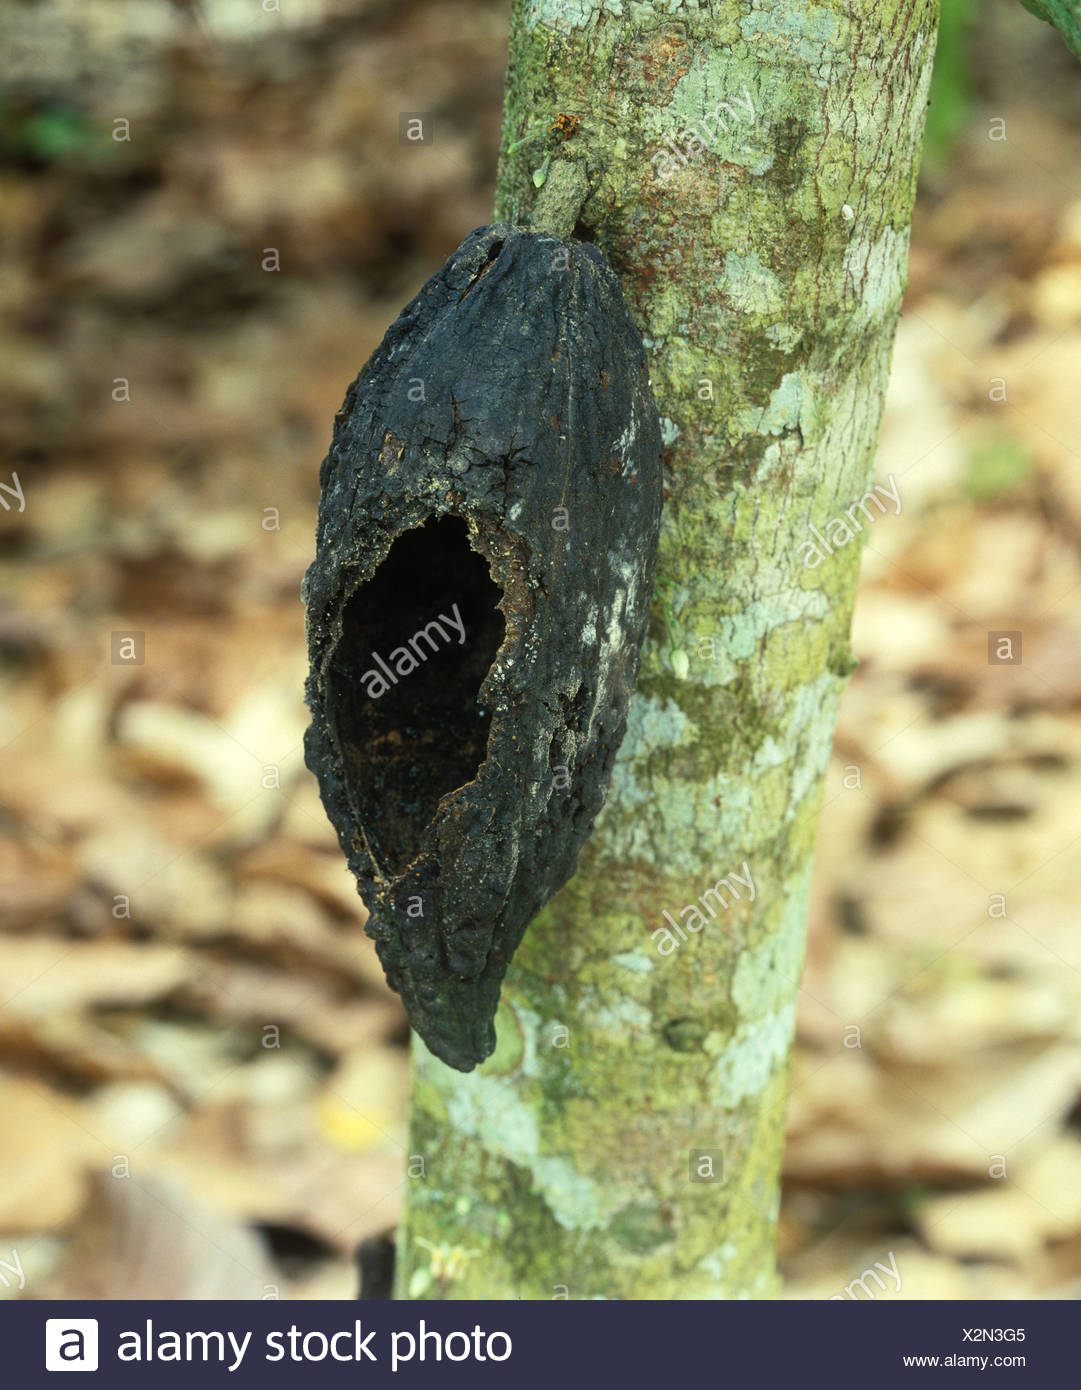 Rat or squirrel rodent damage to a cocoa pod on the bush, Malaysia - Stock Image